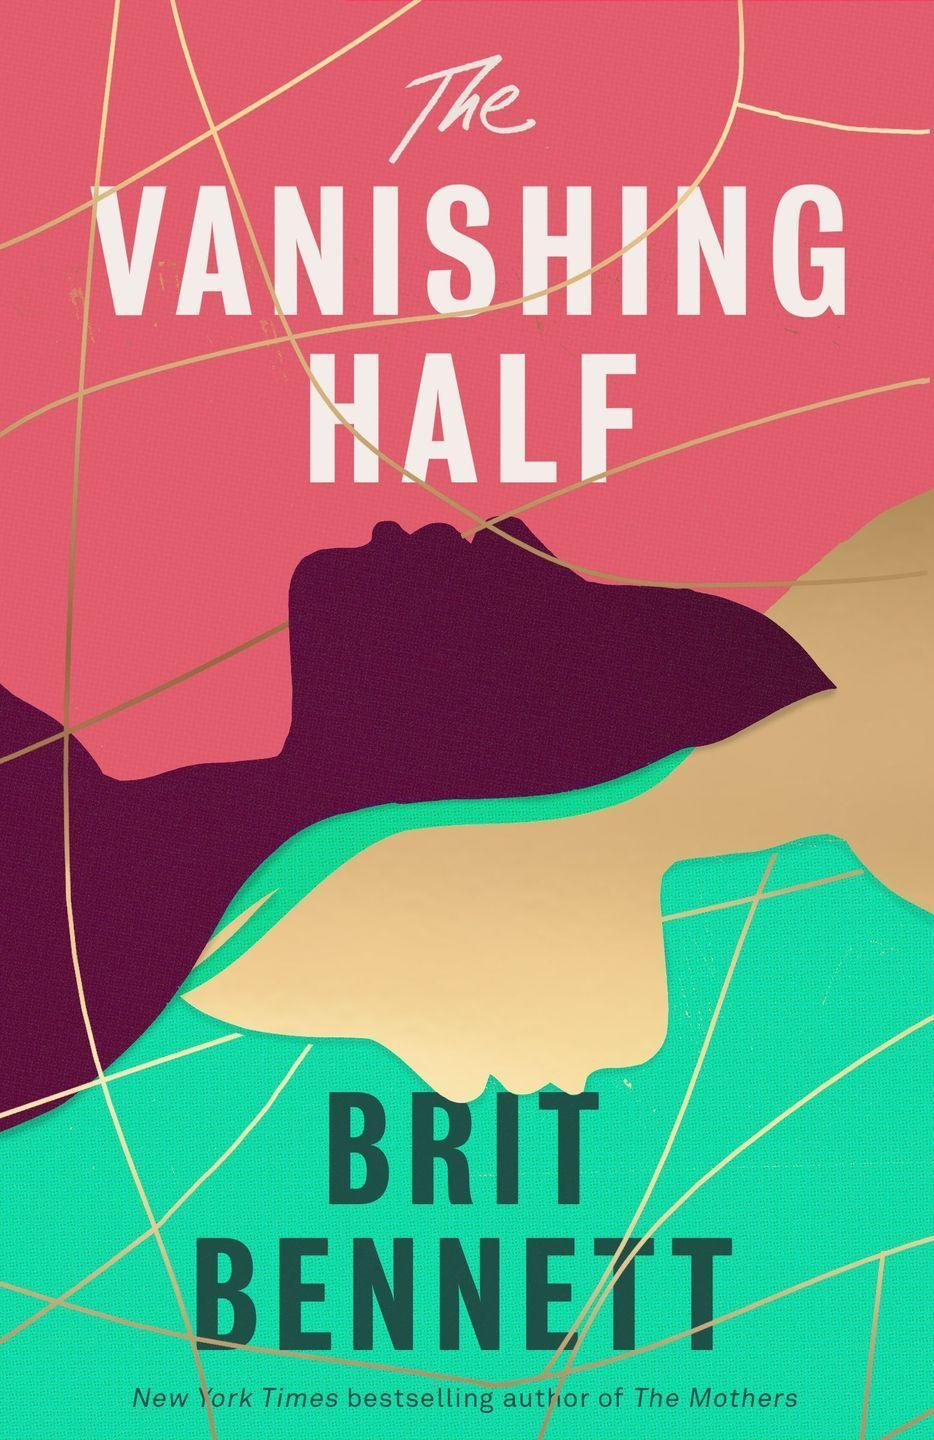 """<p>The Vanishing Half is a captivating family saga of two identical twins who find themselves drawn in different directions, separated by race, community and families in America.</p><p>""""The Vanishing Half by Brit Bennett is a beautifully written<br>novel, and psychologically very complex, and it looks into the consequences of racism and its effect on the human psyche, and how it can determine people's lifestyle choices and relationships and shape their fate."""" - Bernardine Evaristo</p><p><a class=""""link rapid-noclick-resp"""" href=""""https://www.amazon.co.uk/Vanishing-Half-bestselling-author-Mothers/dp/0349701466/ref=sr_1_1?dchild=1&keywords=The+Vanishing+Half%2C+Brit+Bennett&qid=1615458610&sr=8-1&tag=hearstuk-yahoo-21&ascsubtag=%5Bartid%7C1927.g.35797924%5Bsrc%7Cyahoo-uk"""" rel=""""nofollow noopener"""" target=""""_blank"""" data-ylk=""""slk:SHOP NOW"""">SHOP NOW</a></p>"""